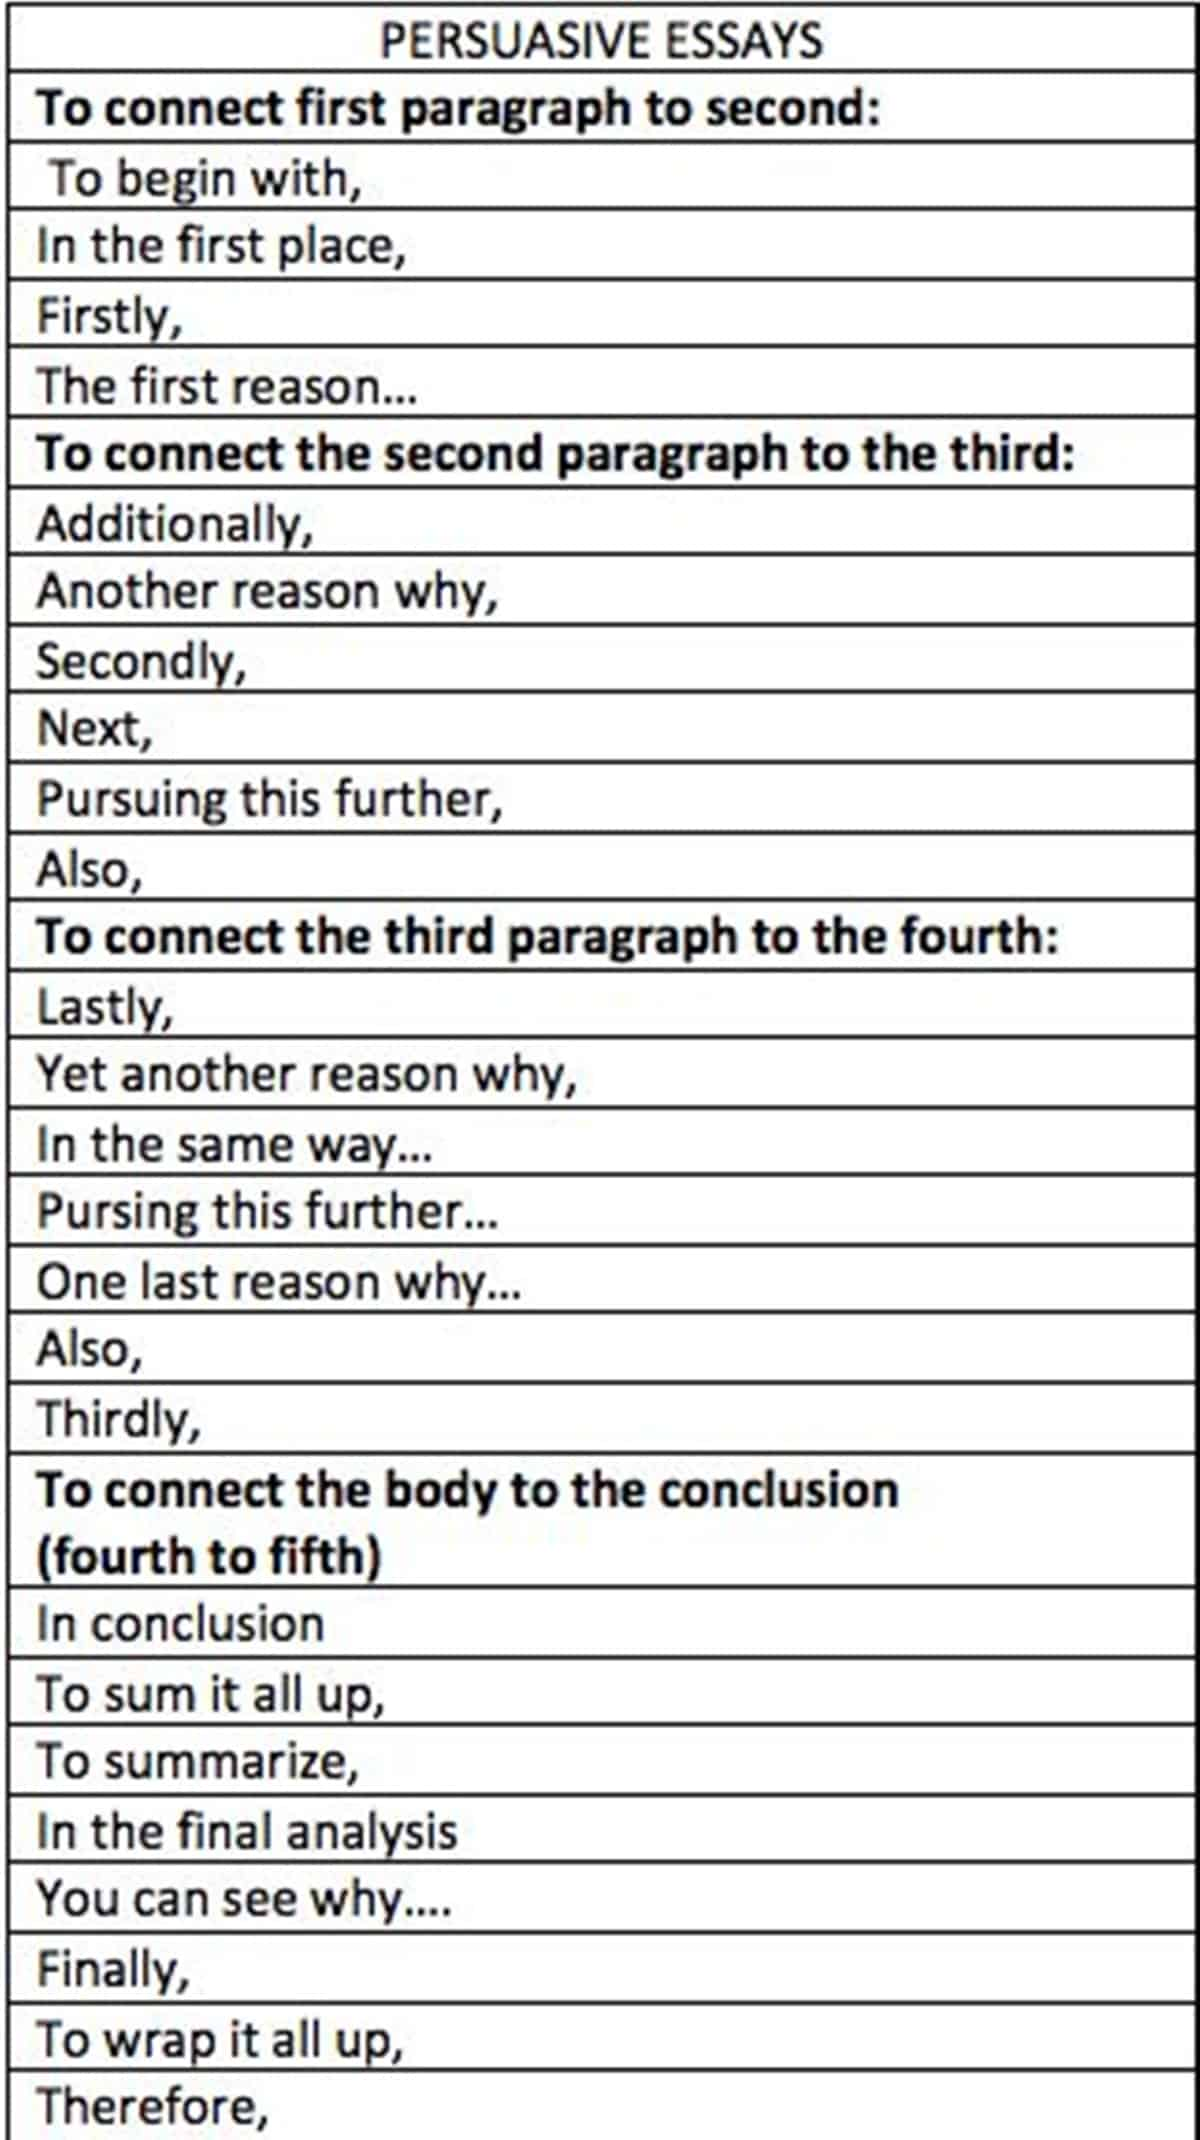 100 Useful Words And Phrases To Write A Great Essay